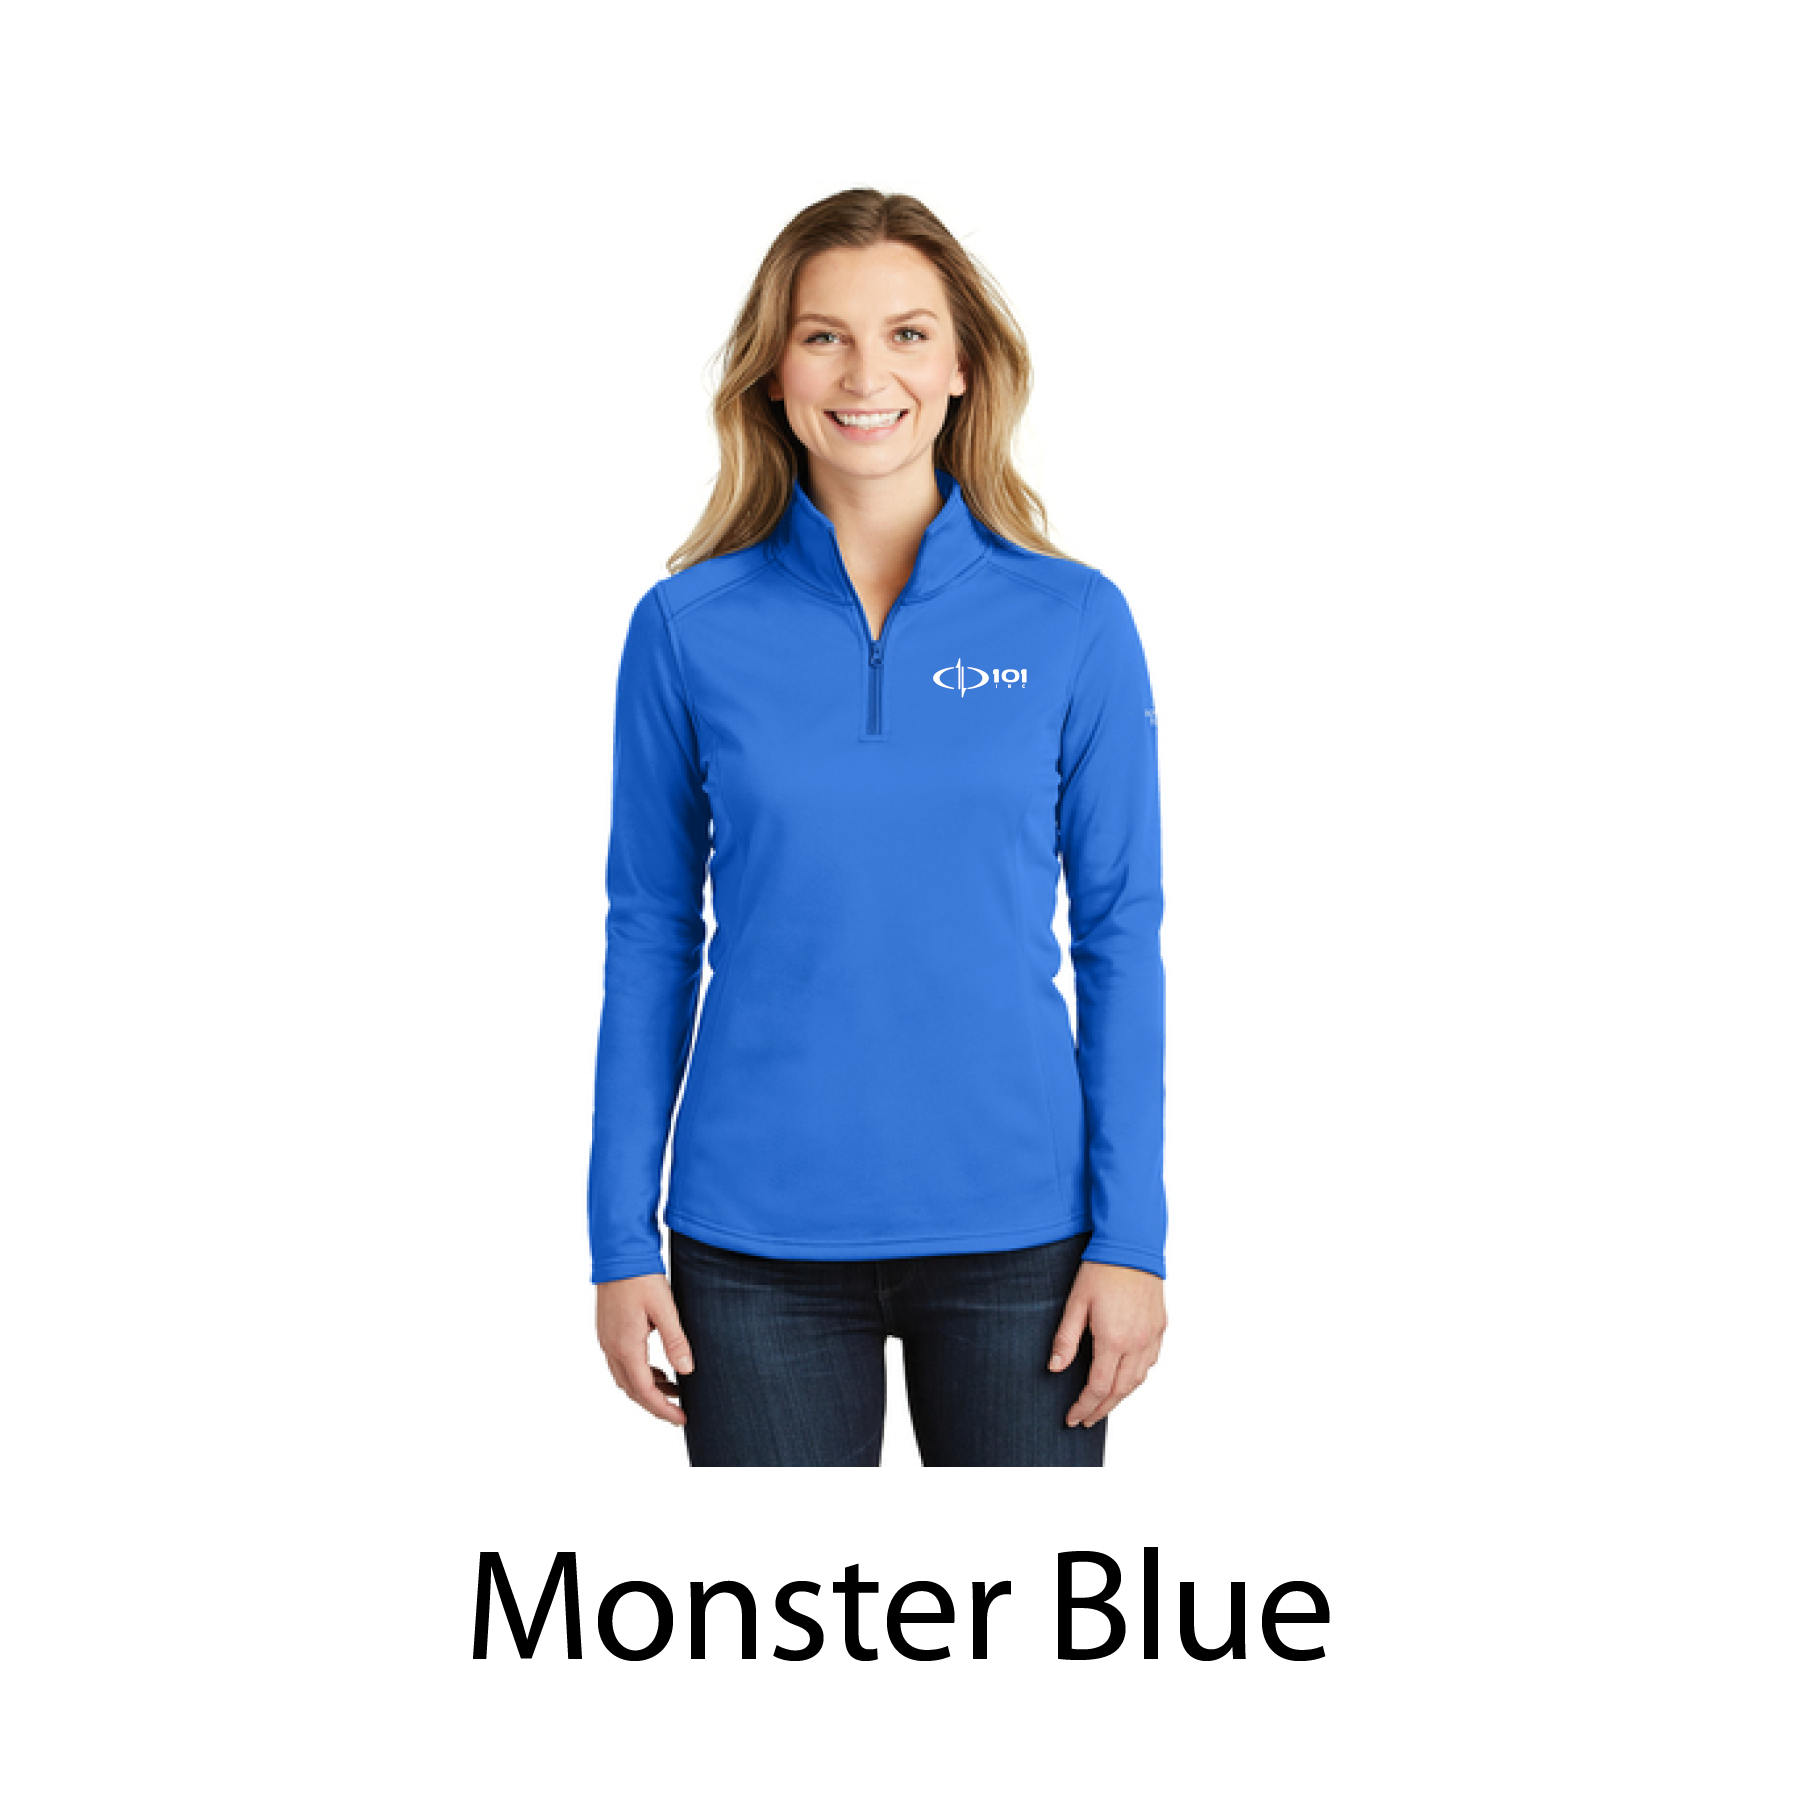 The North Face® Ladies Tech 1/4-Zip Fleece with embroidered logo